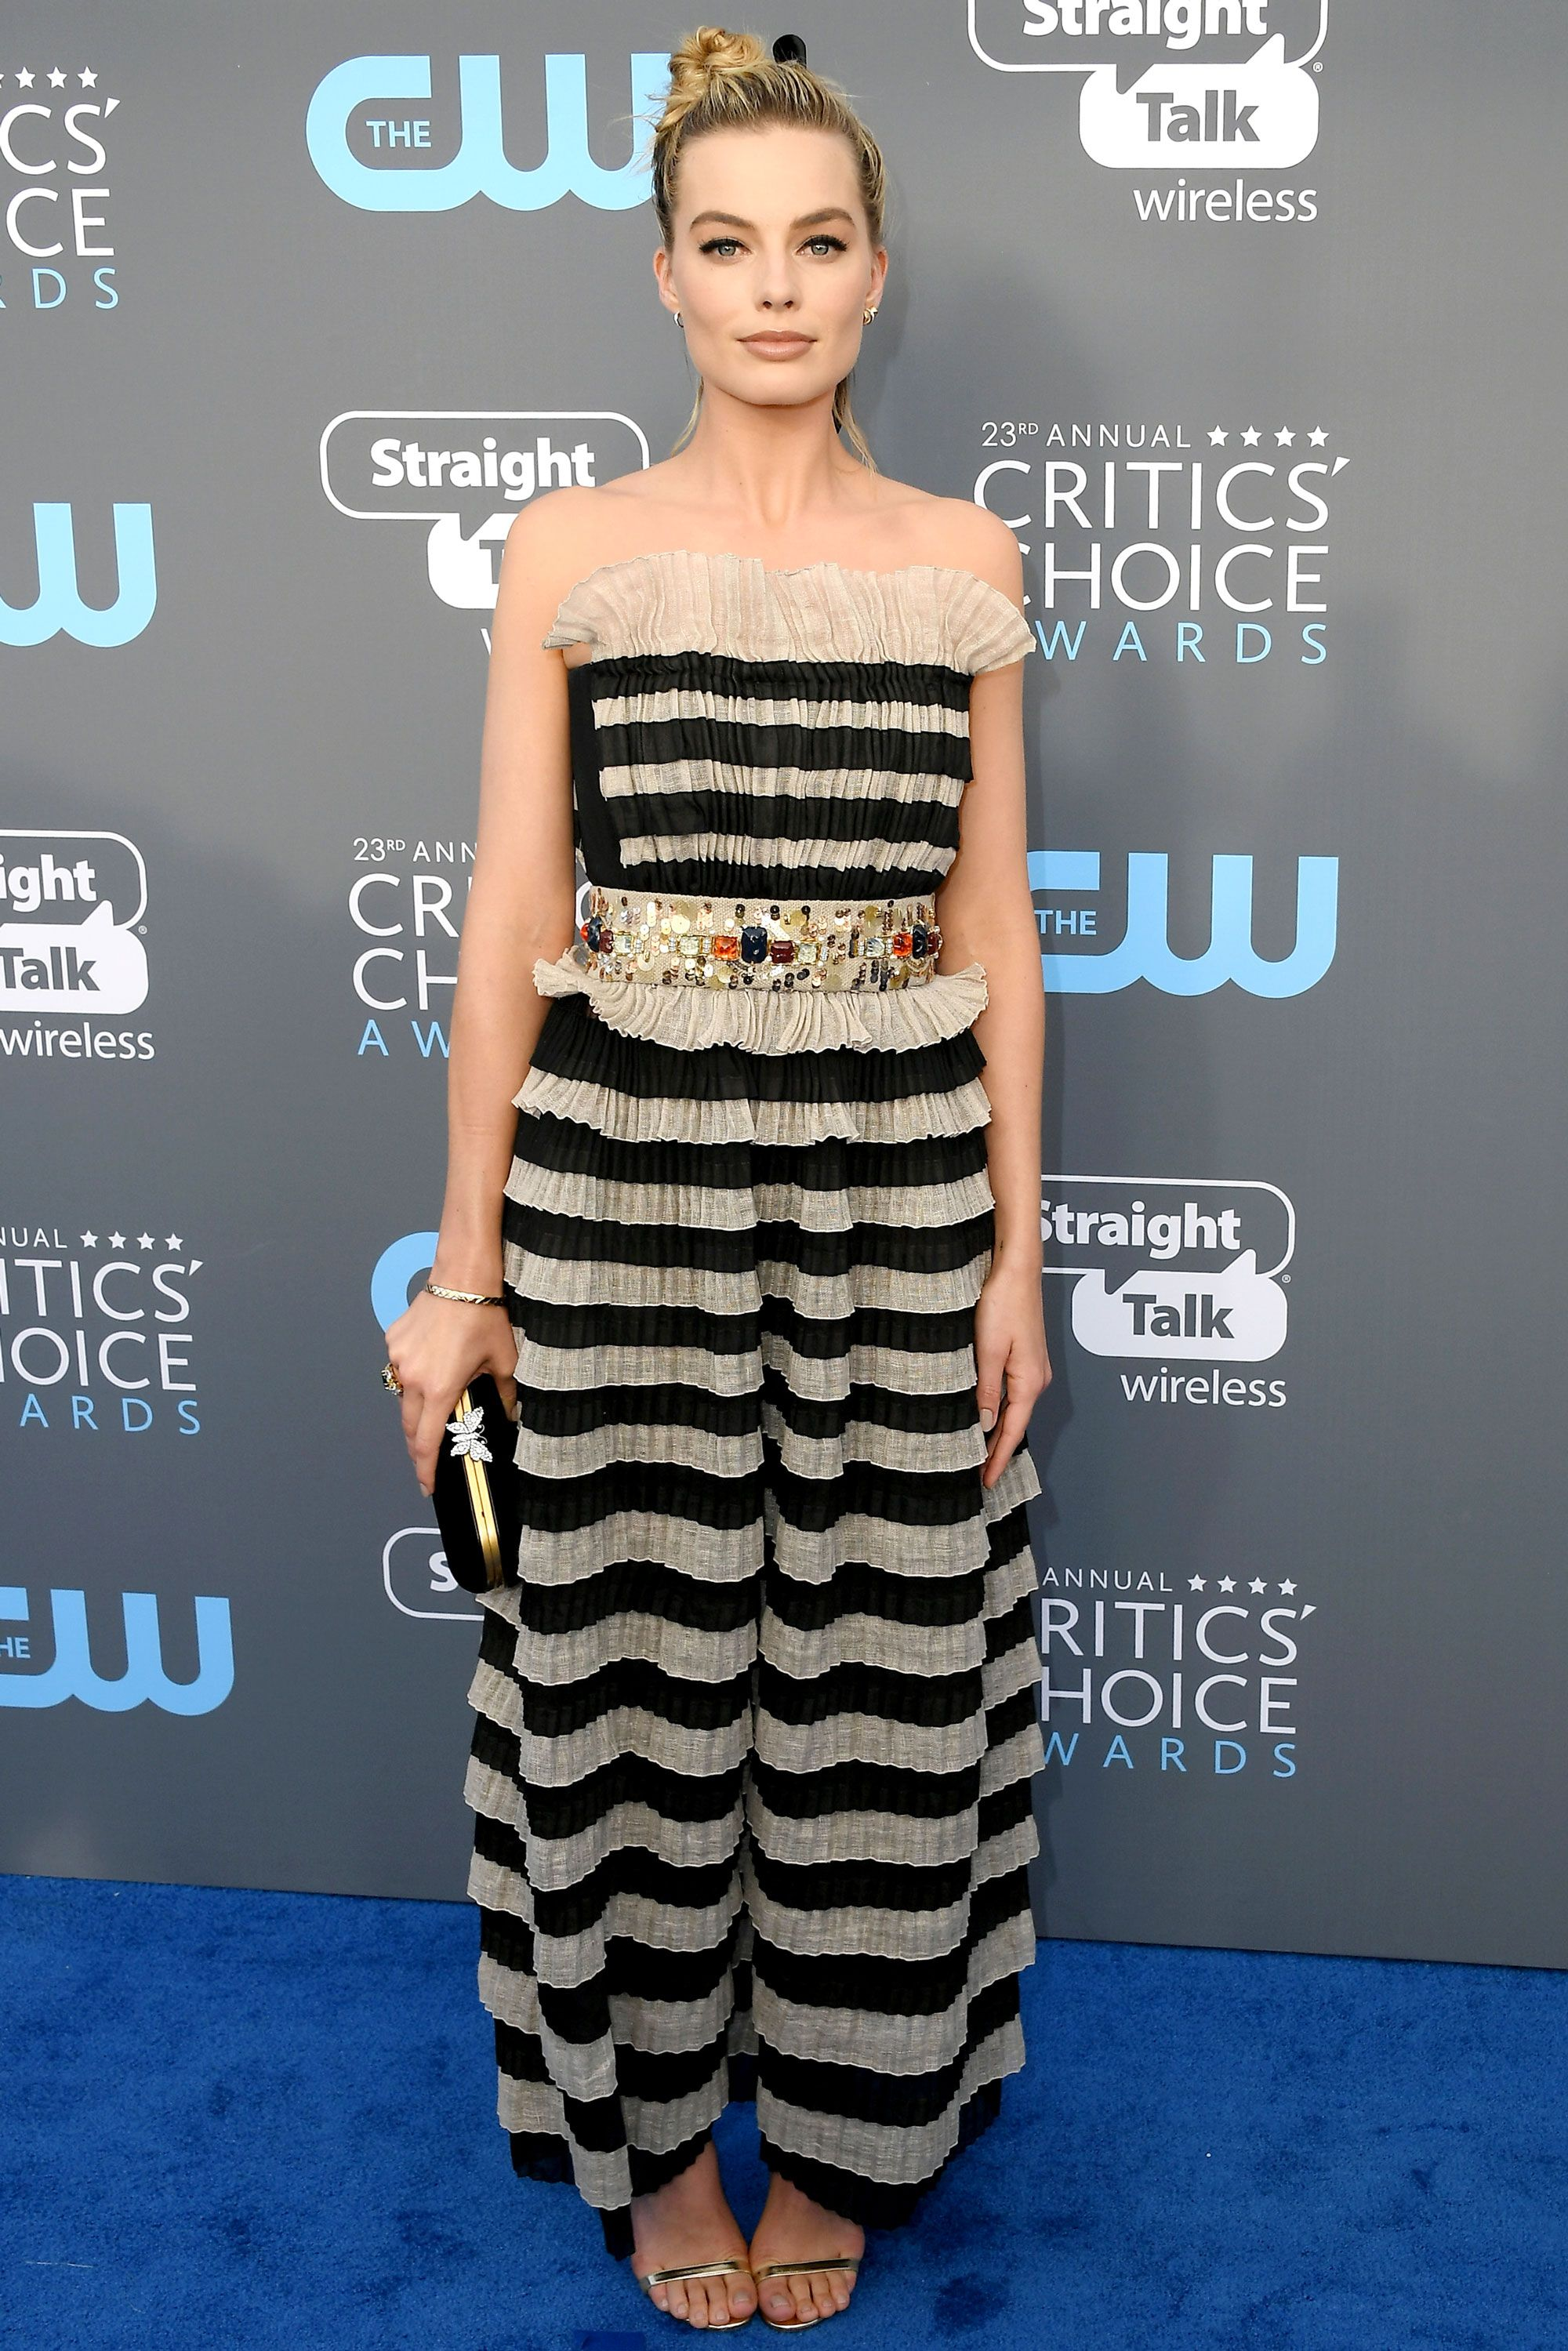 Critics Choice Awards Fashion And All Looks From The Red Carpet Red Carpet Dresses Margot Robbie Style Critics Choice